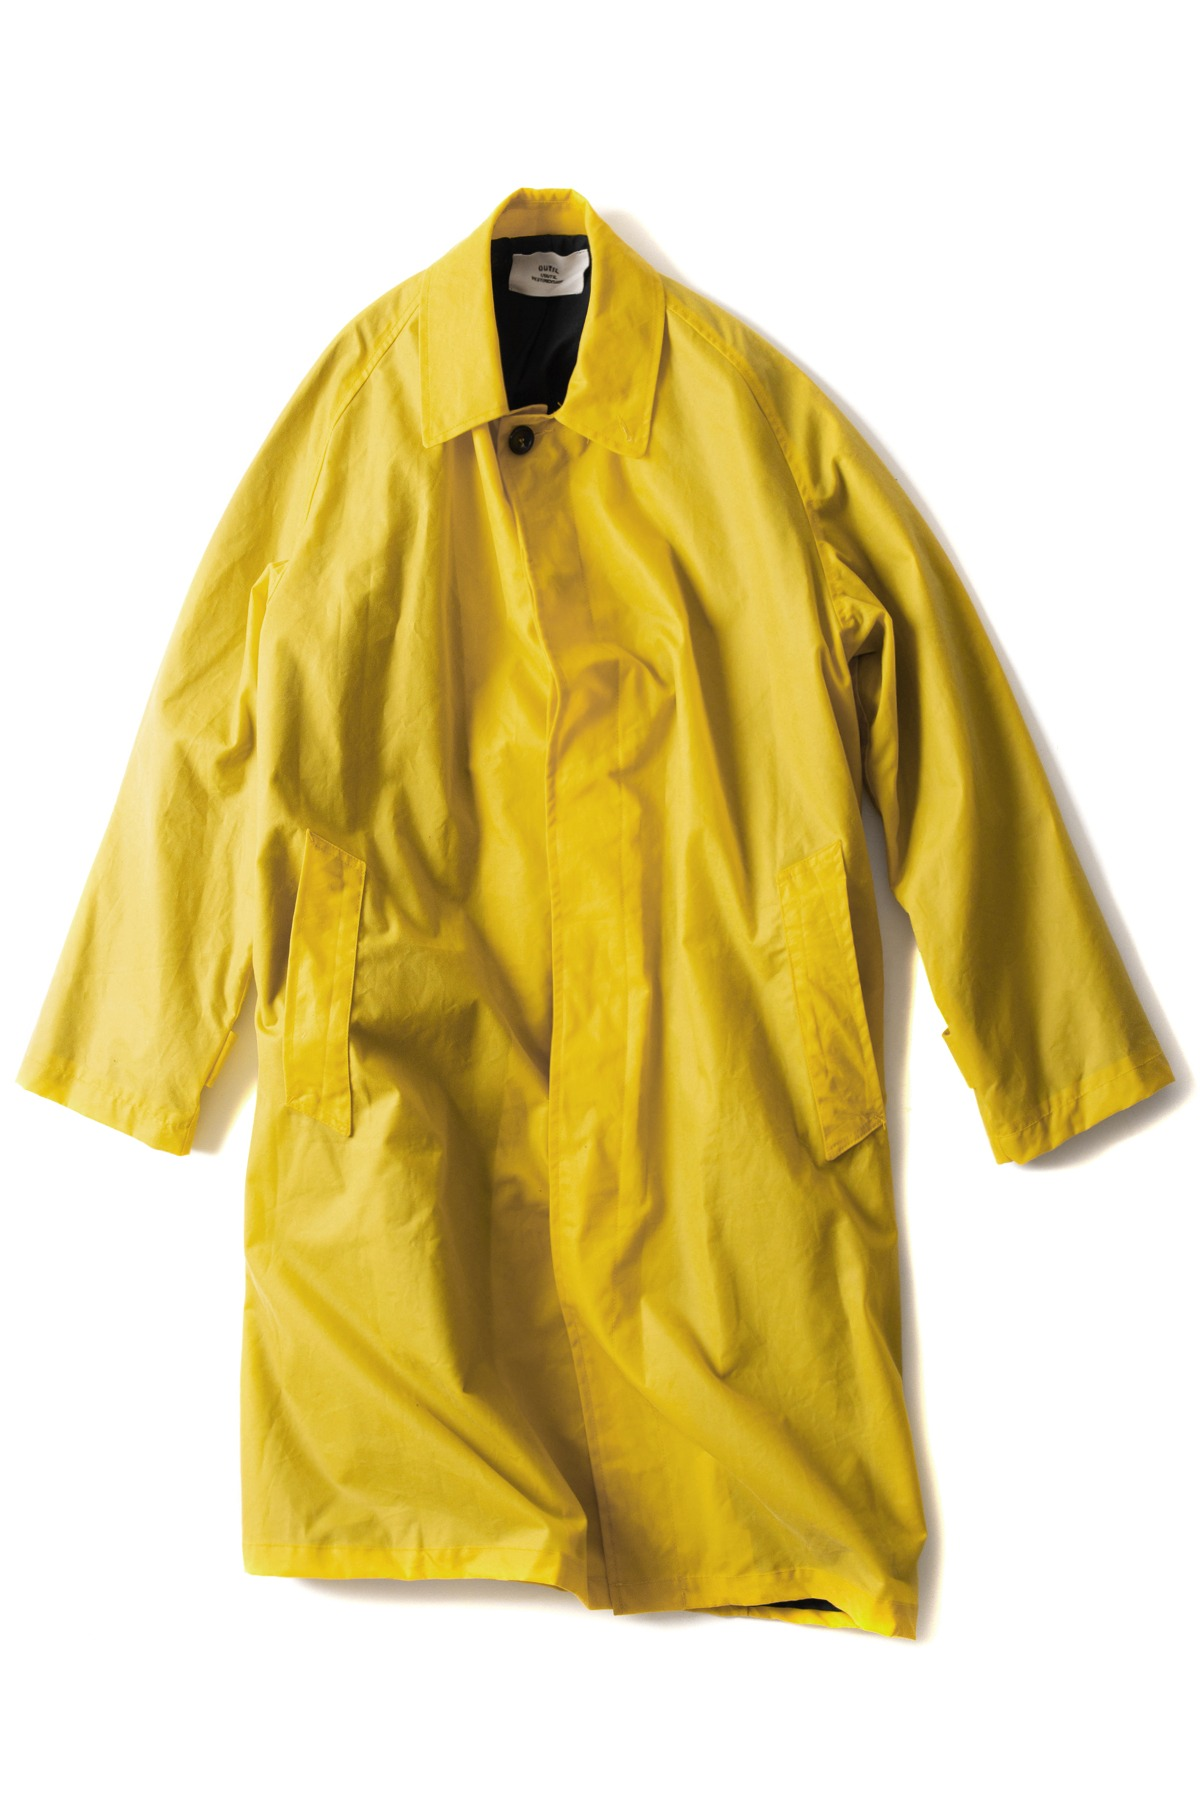 OUTIL : Manteau Calais (Yellow)